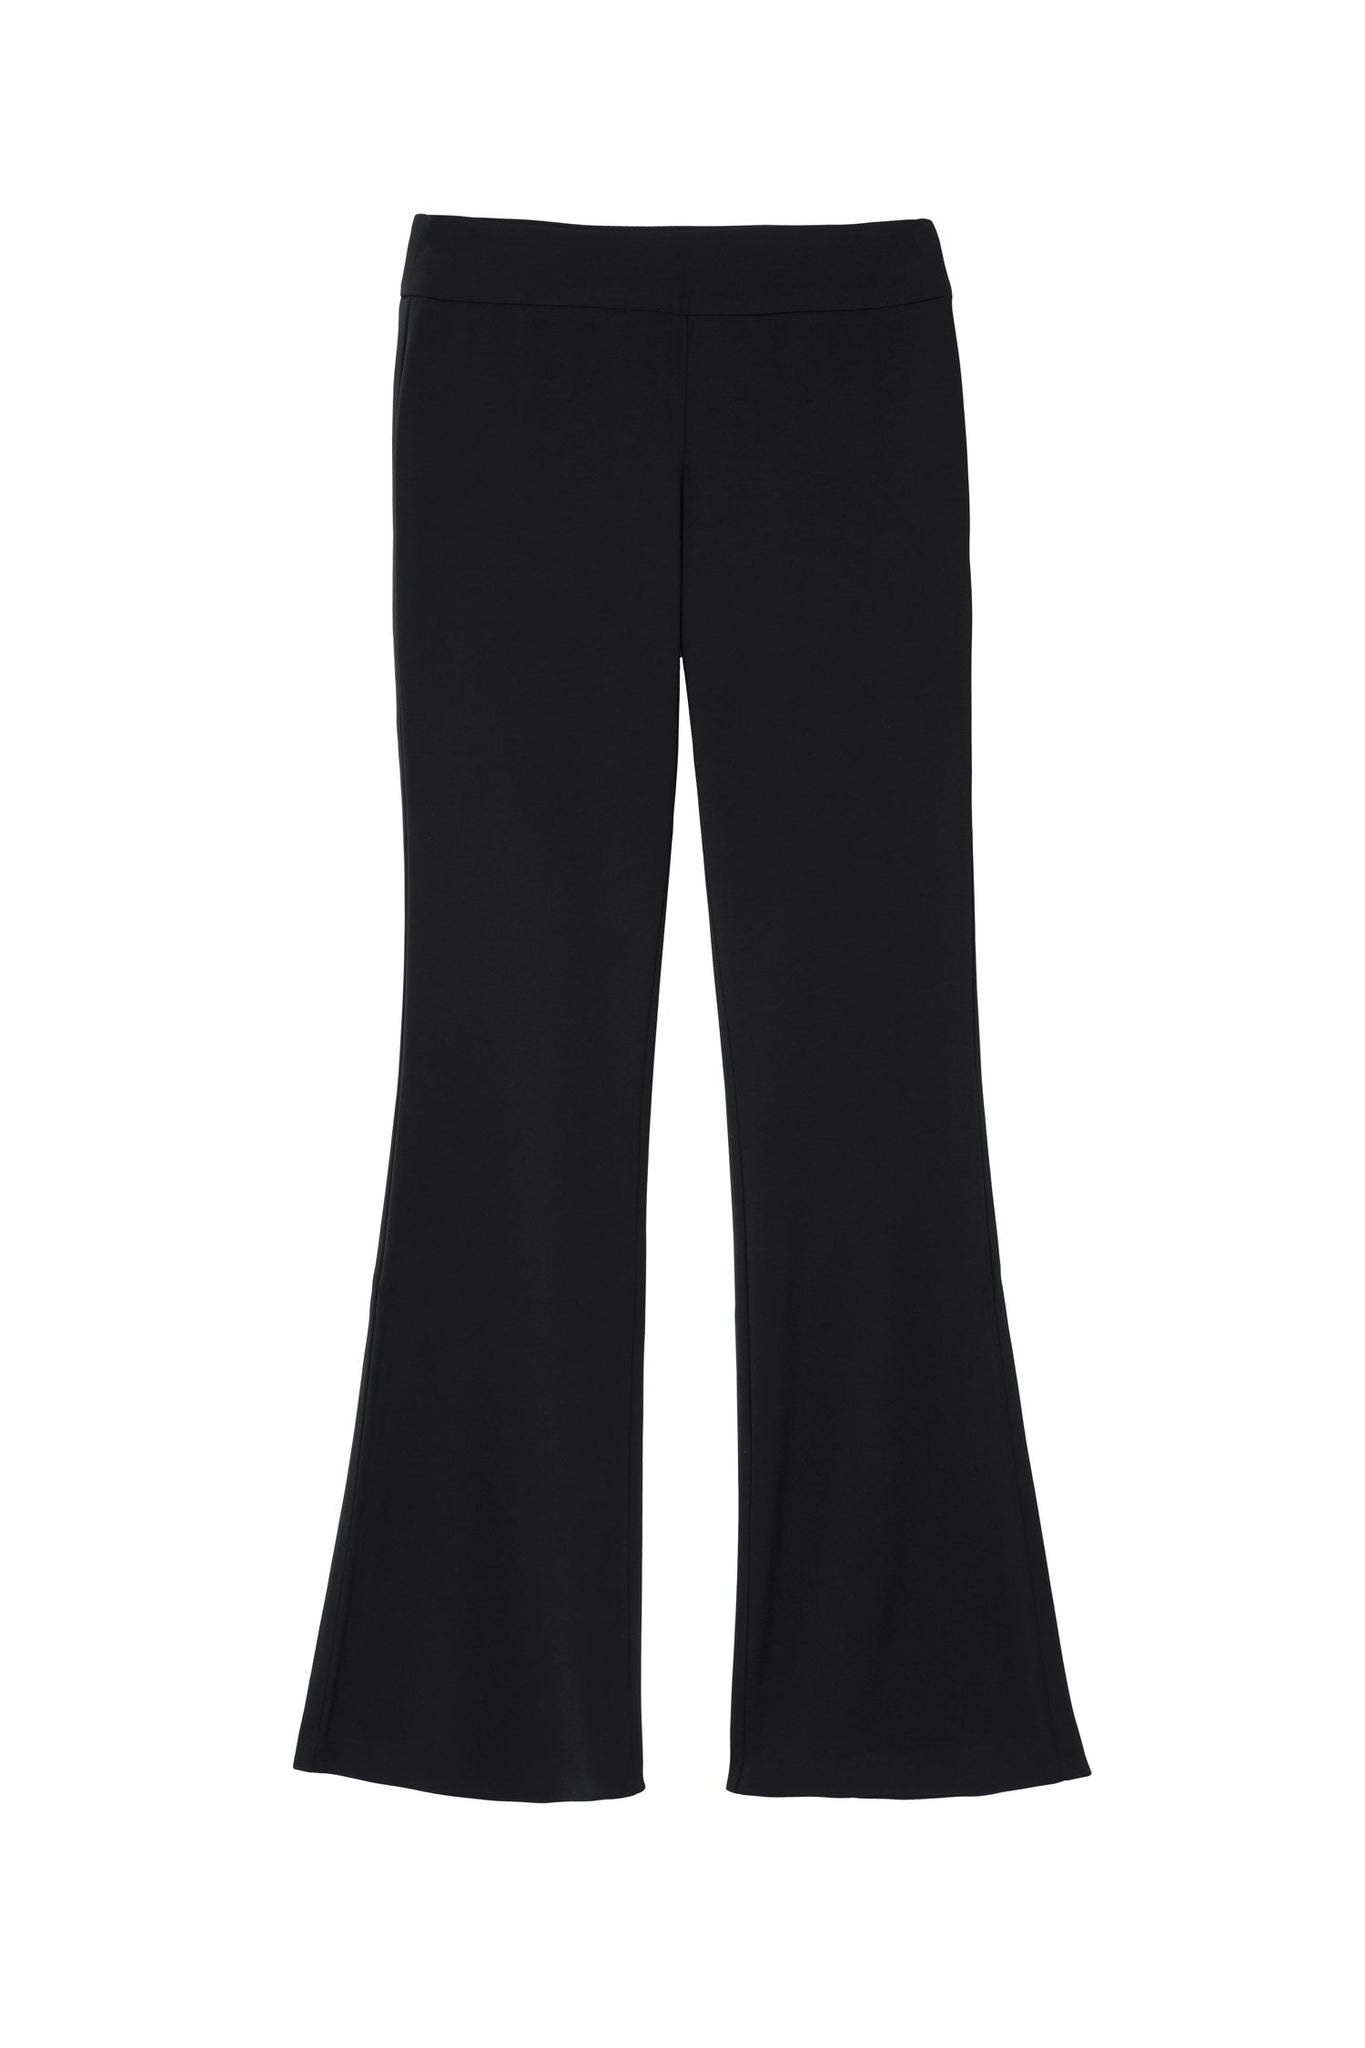 Jade Trousers